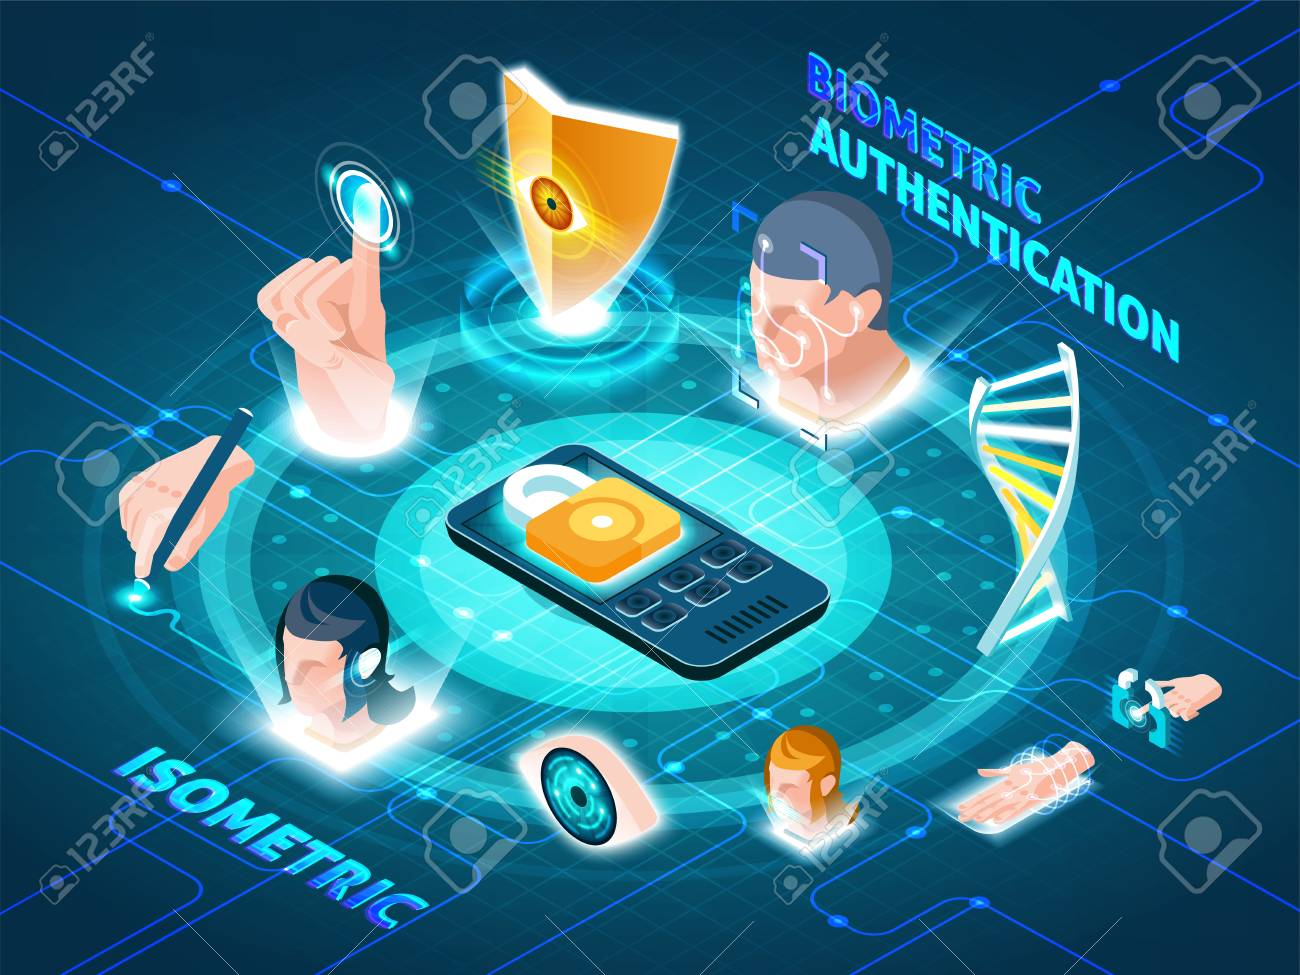 Biometric authentication users security isometric circle composition with padlock on smartphone and recognition methods symbols vector illustration - 96782112